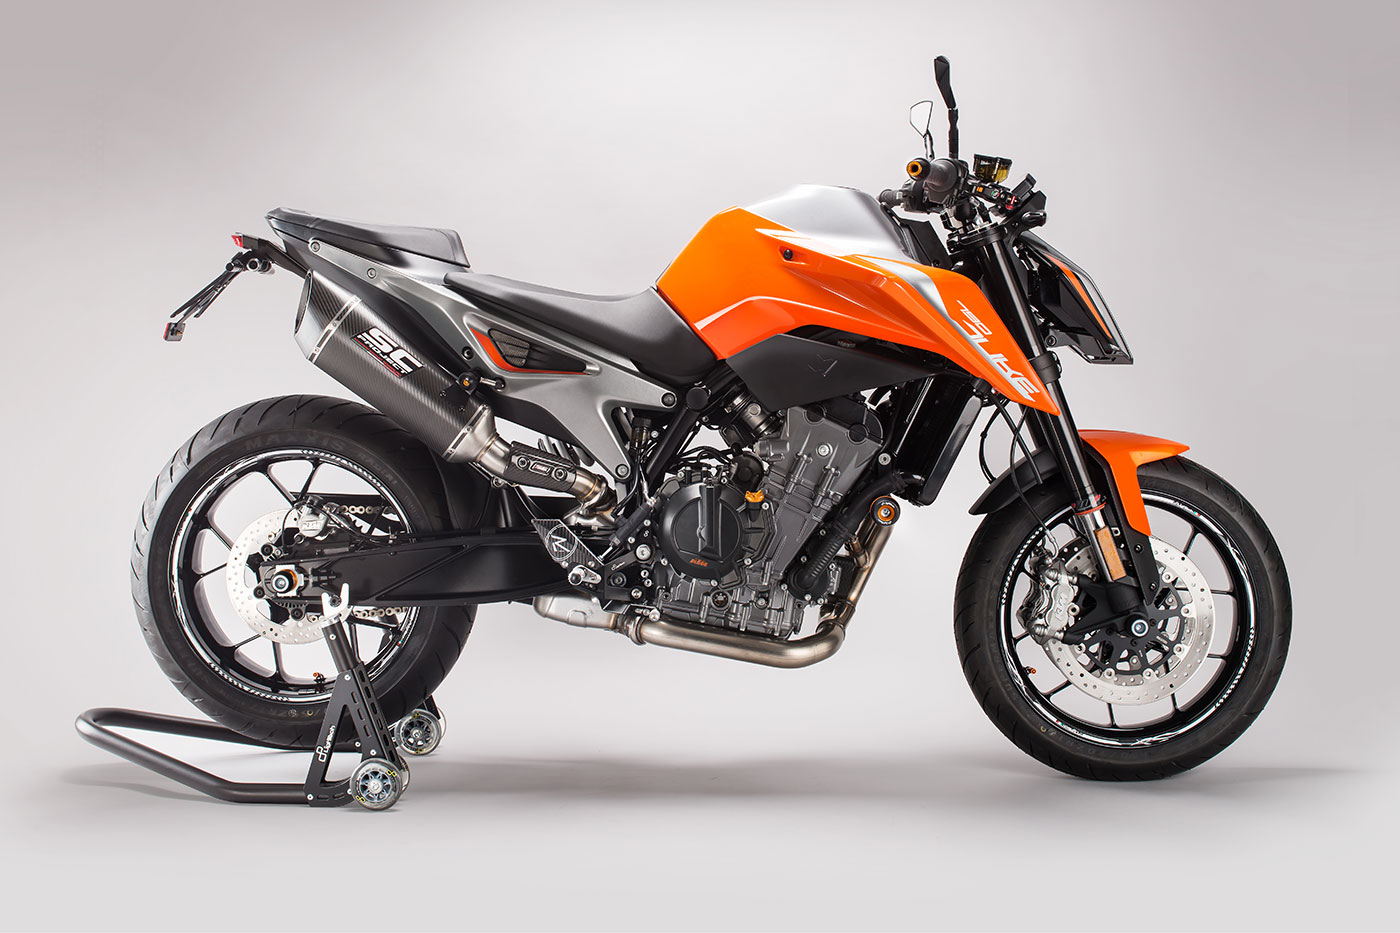 La KTM 790 Duke accessoriata da LighTech